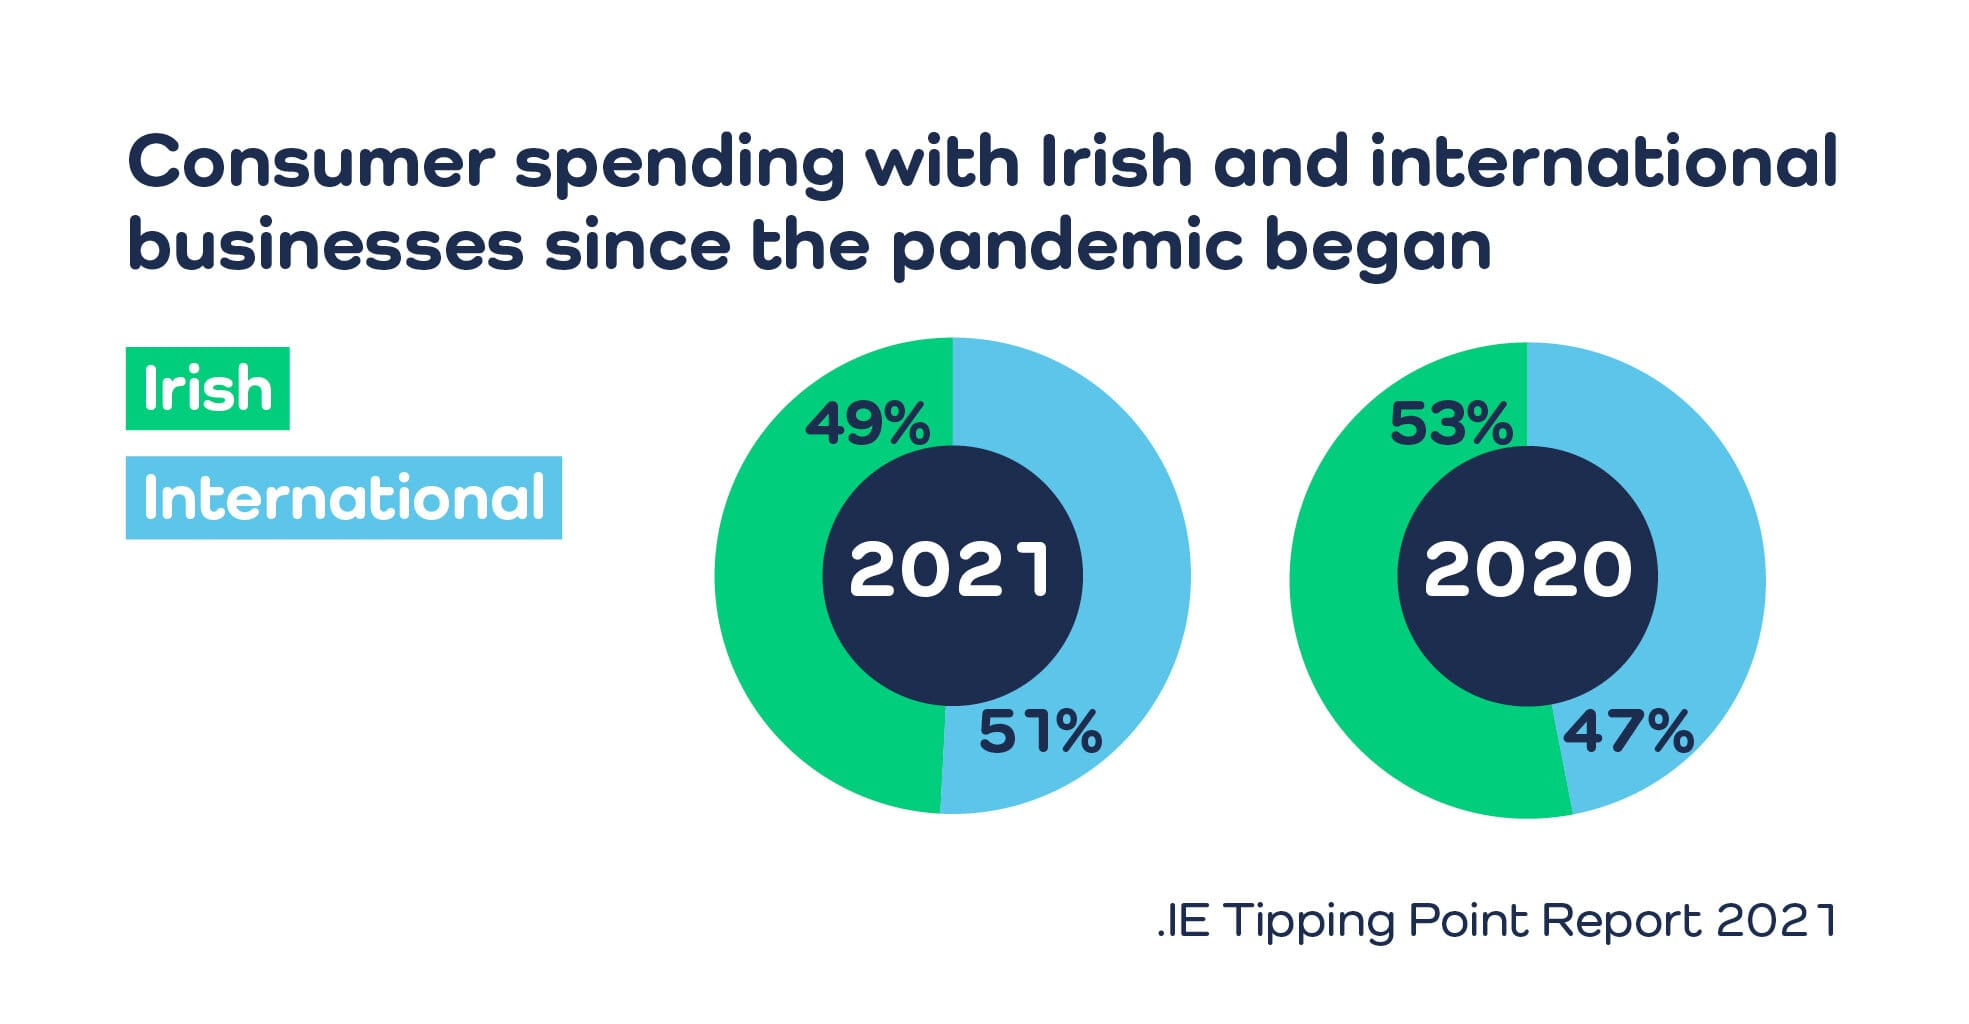 .IE Tipping Point 2021 - Consumer spending with Irish and international businesses